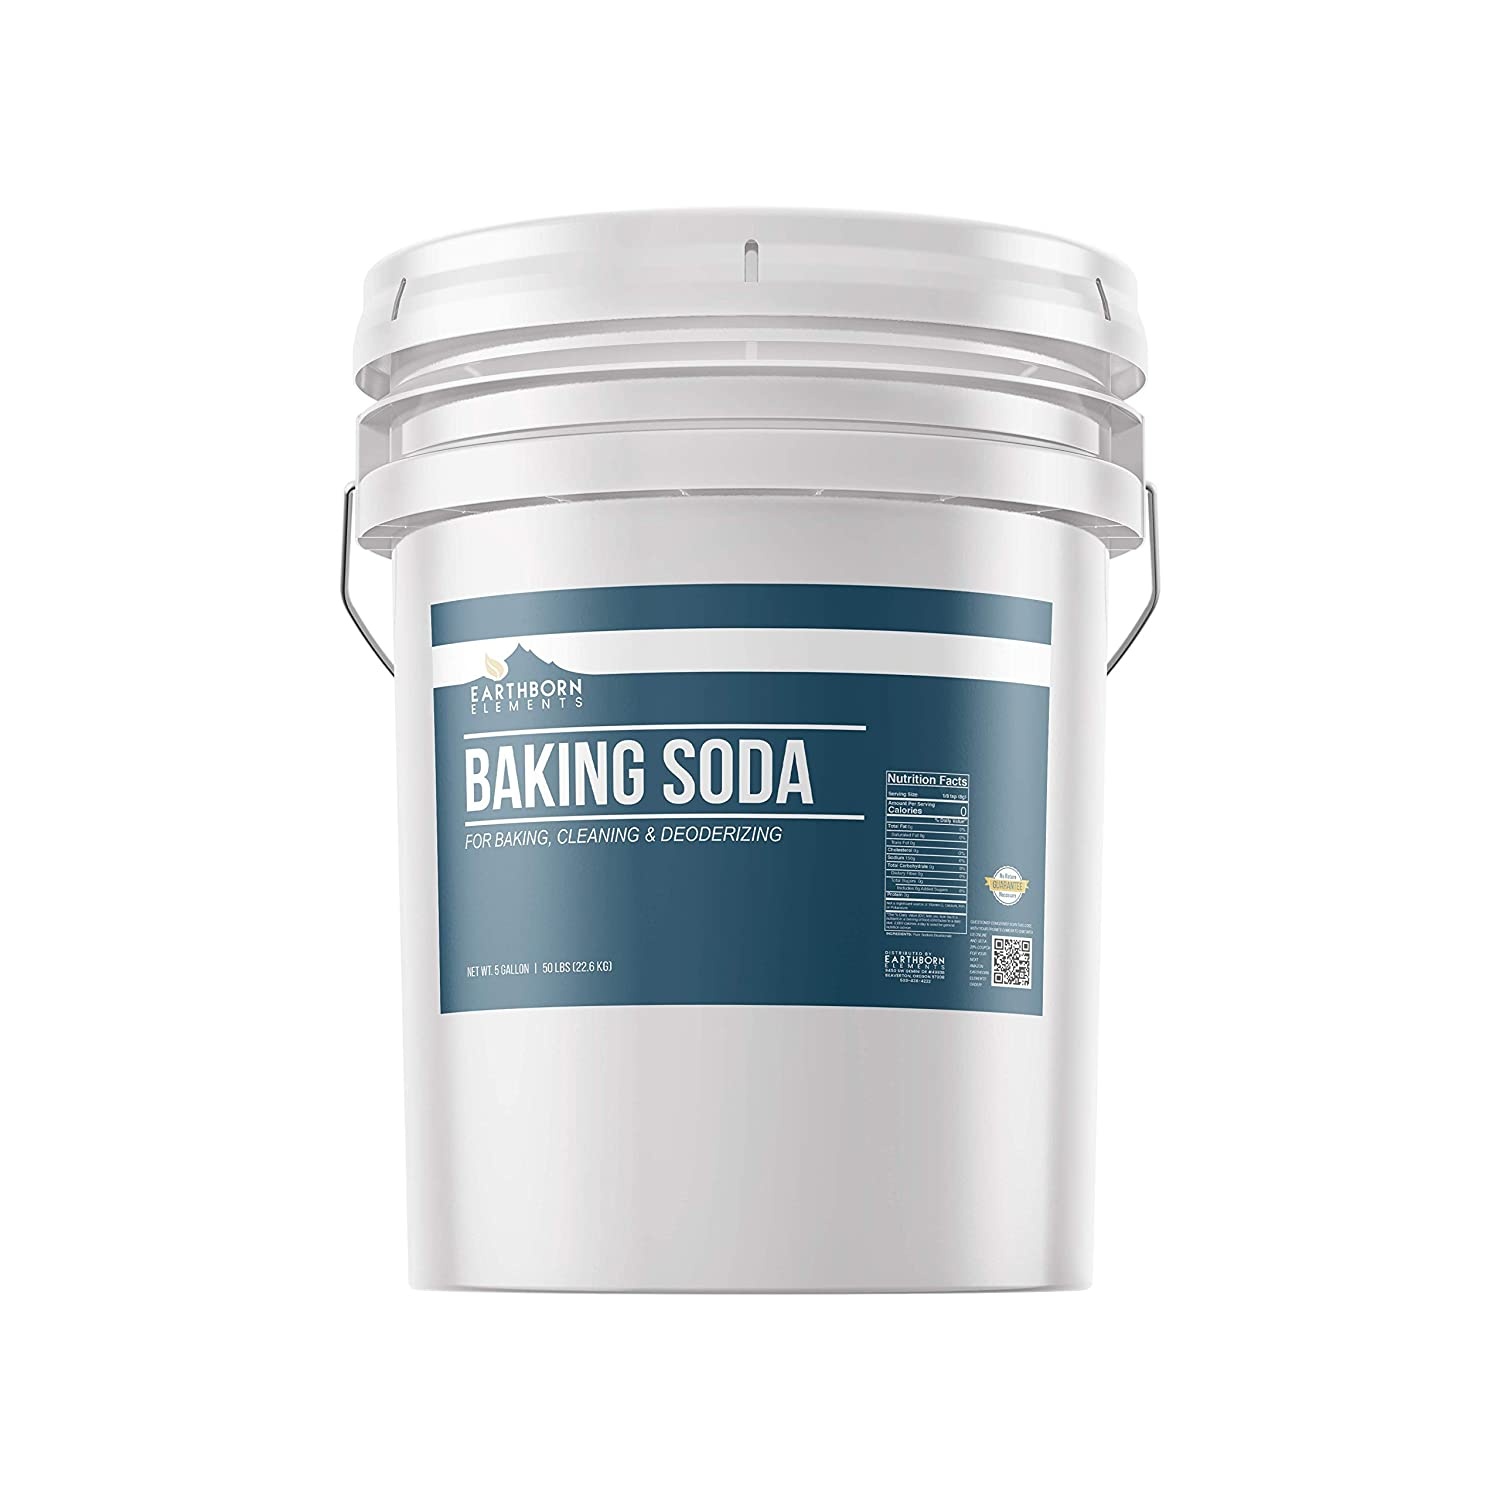 Baking Soda (5 gallon) Natural for Cooking, Baking, Cleaning, Deodorizing, & More by Earthborn Elements